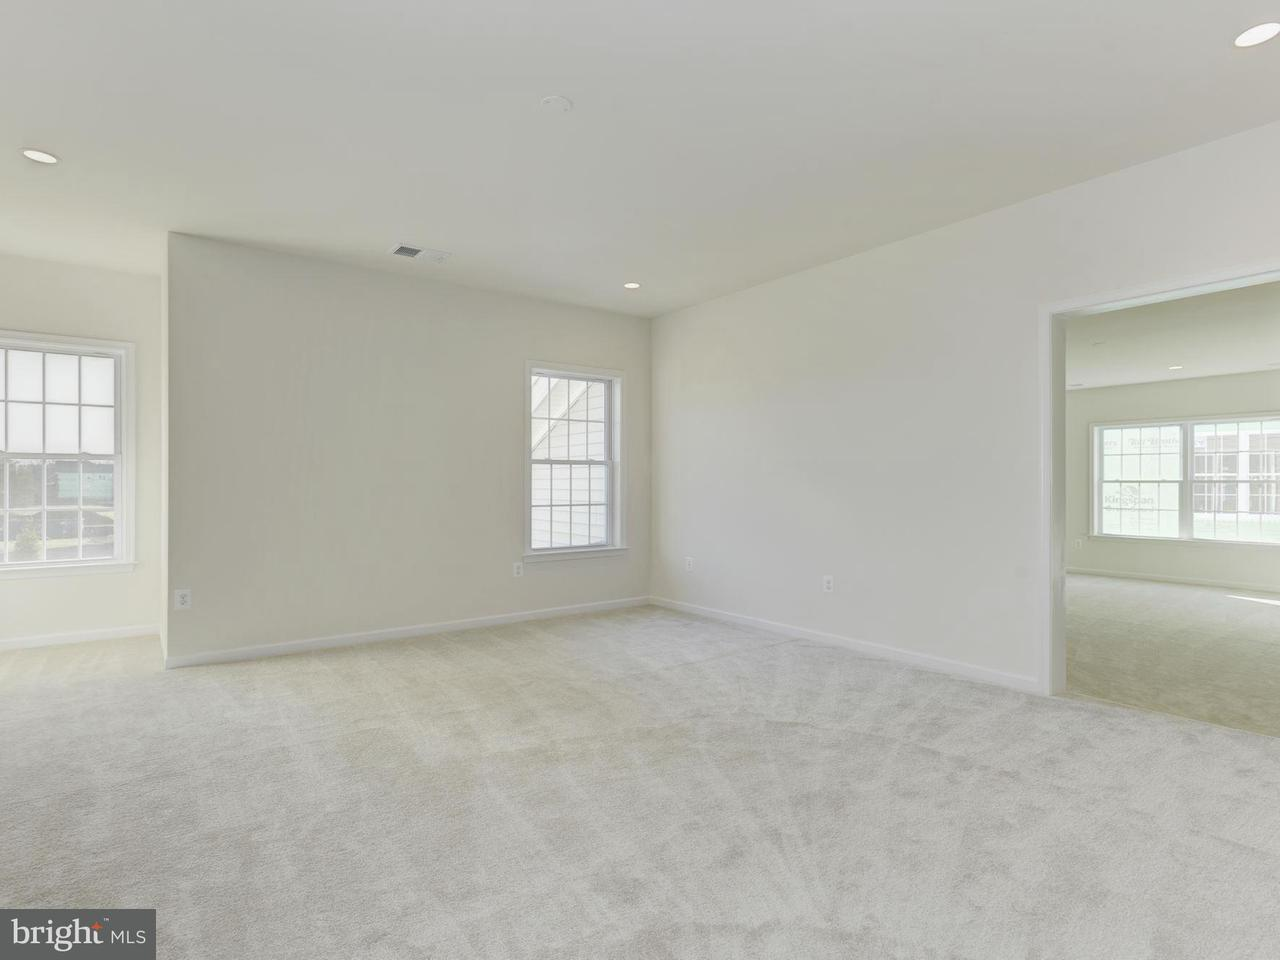 Additional photo for property listing at 24263 Crabtree Court 24263 Crabtree Court Aldie, 弗吉尼亚州 20105 美国